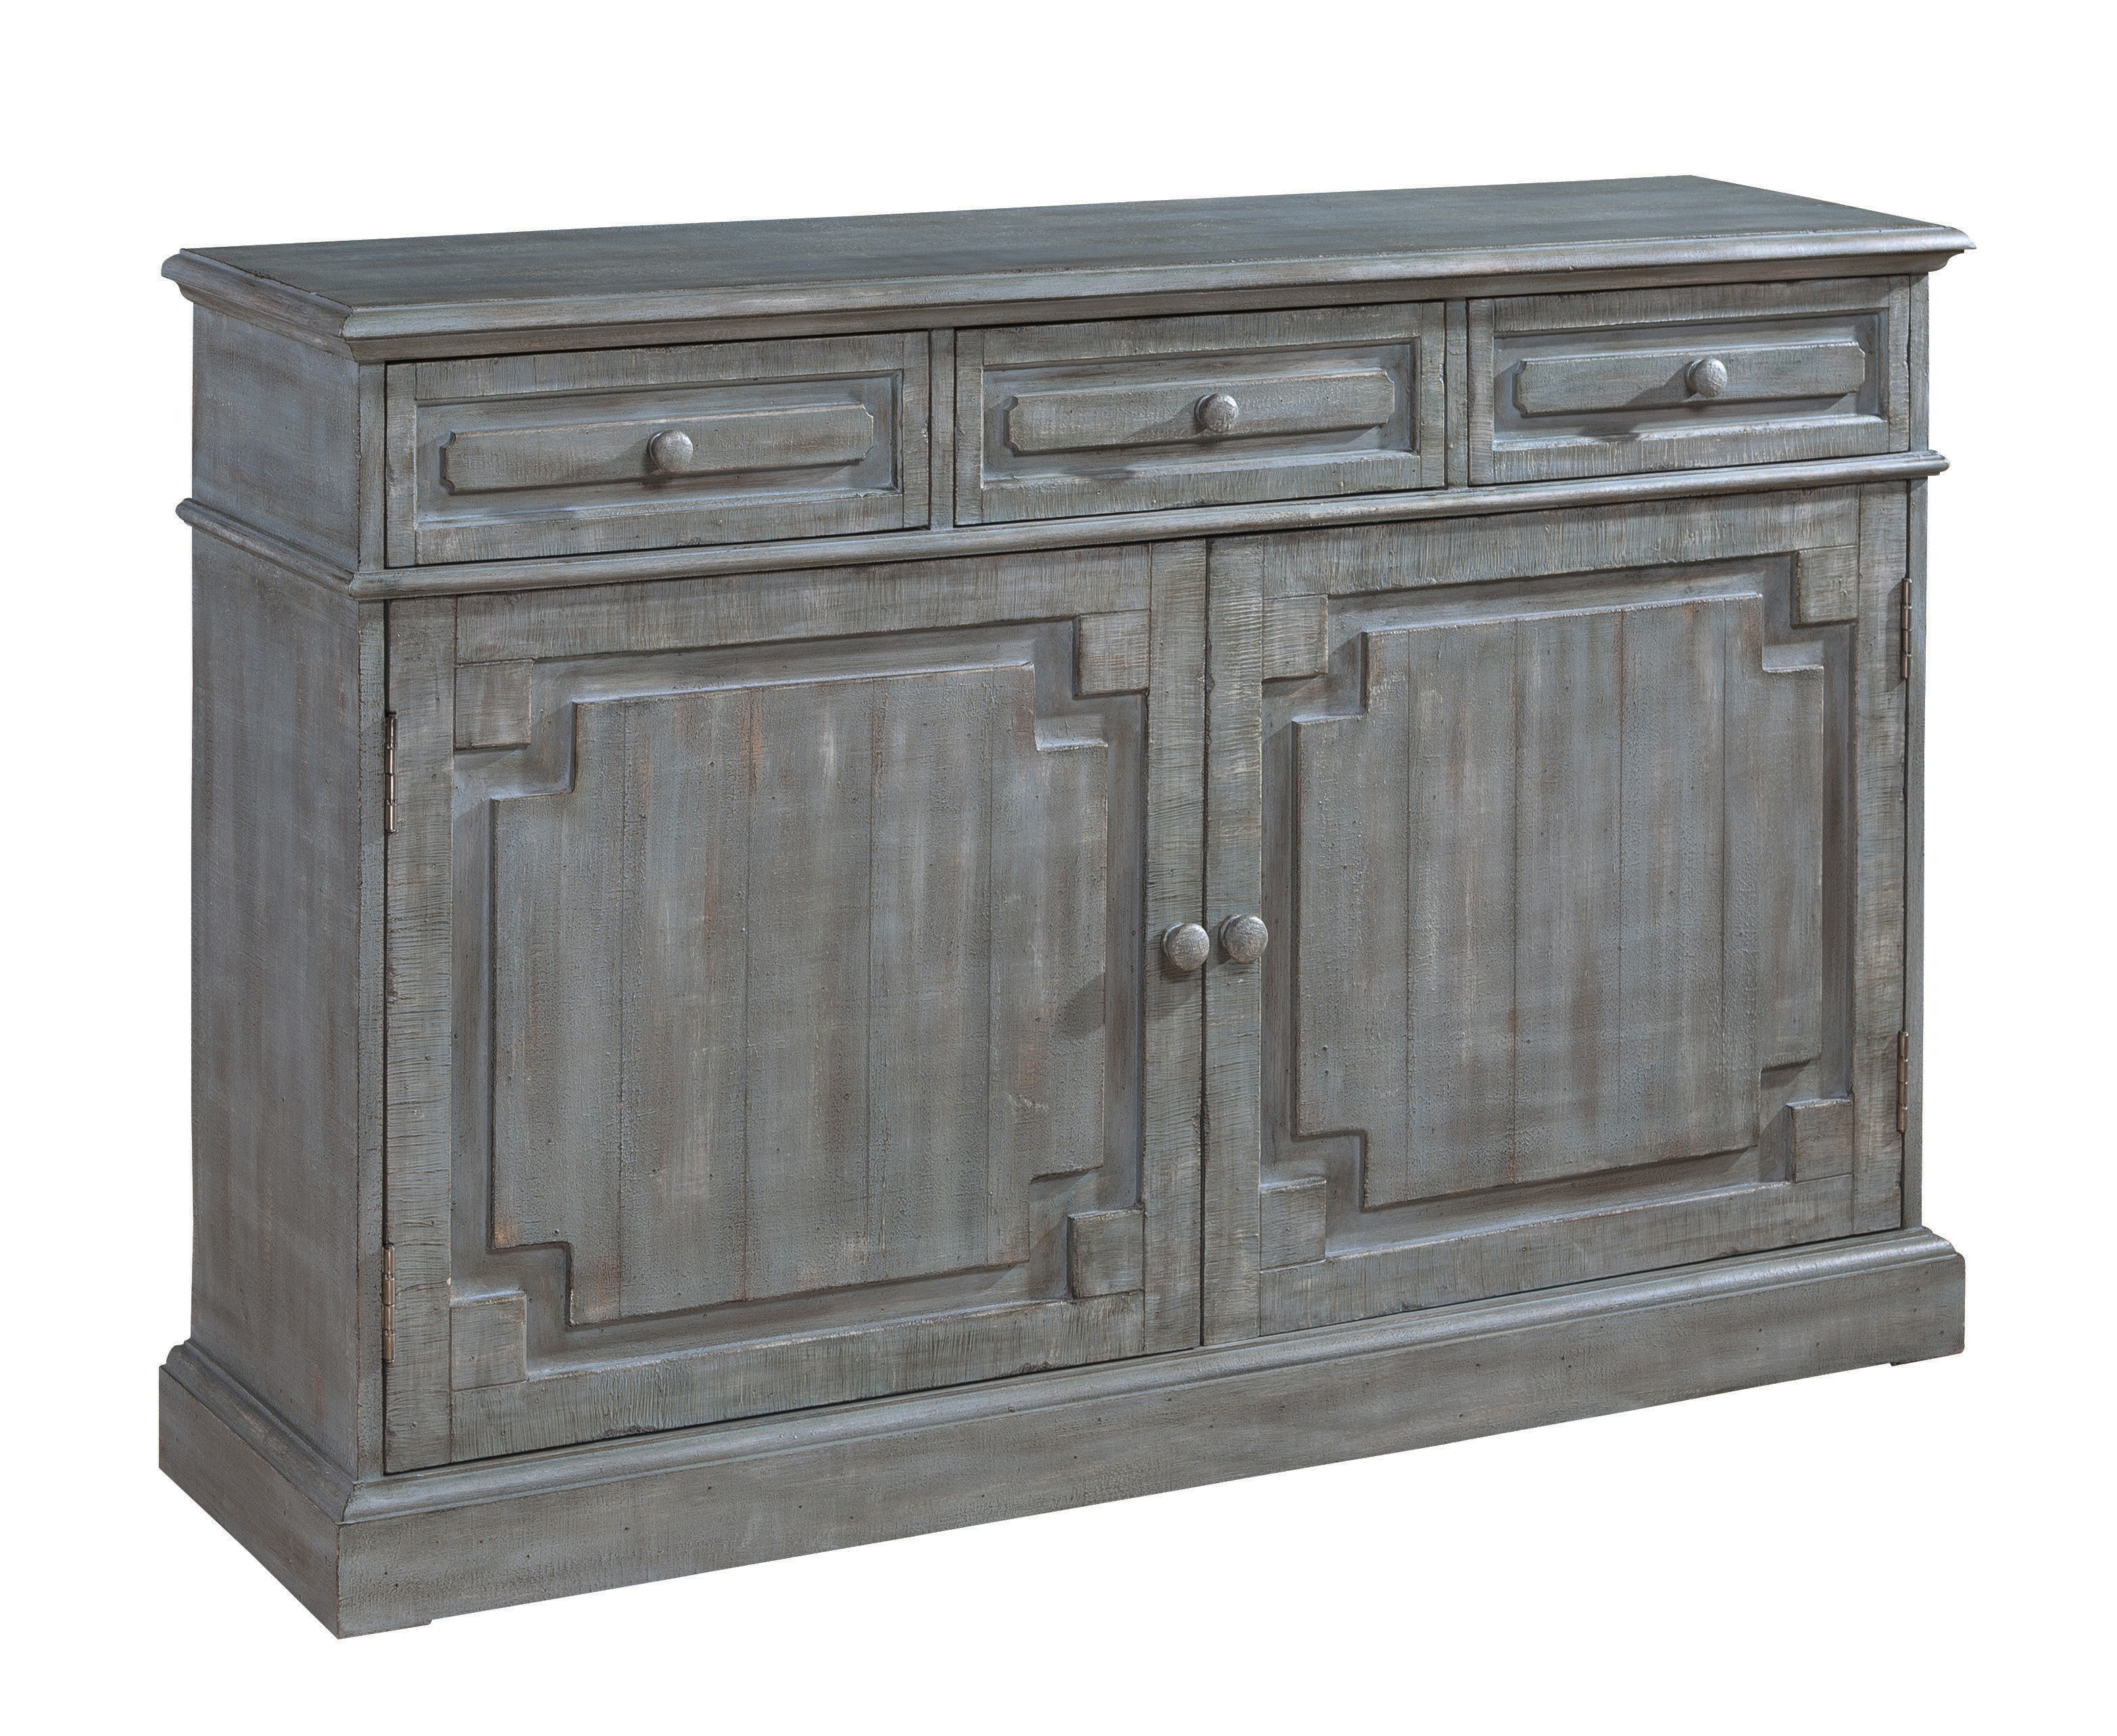 Inspiration about Mistana Adelbert Credenza With Regard To 2018 Caines Credenzas (#14 of 20)